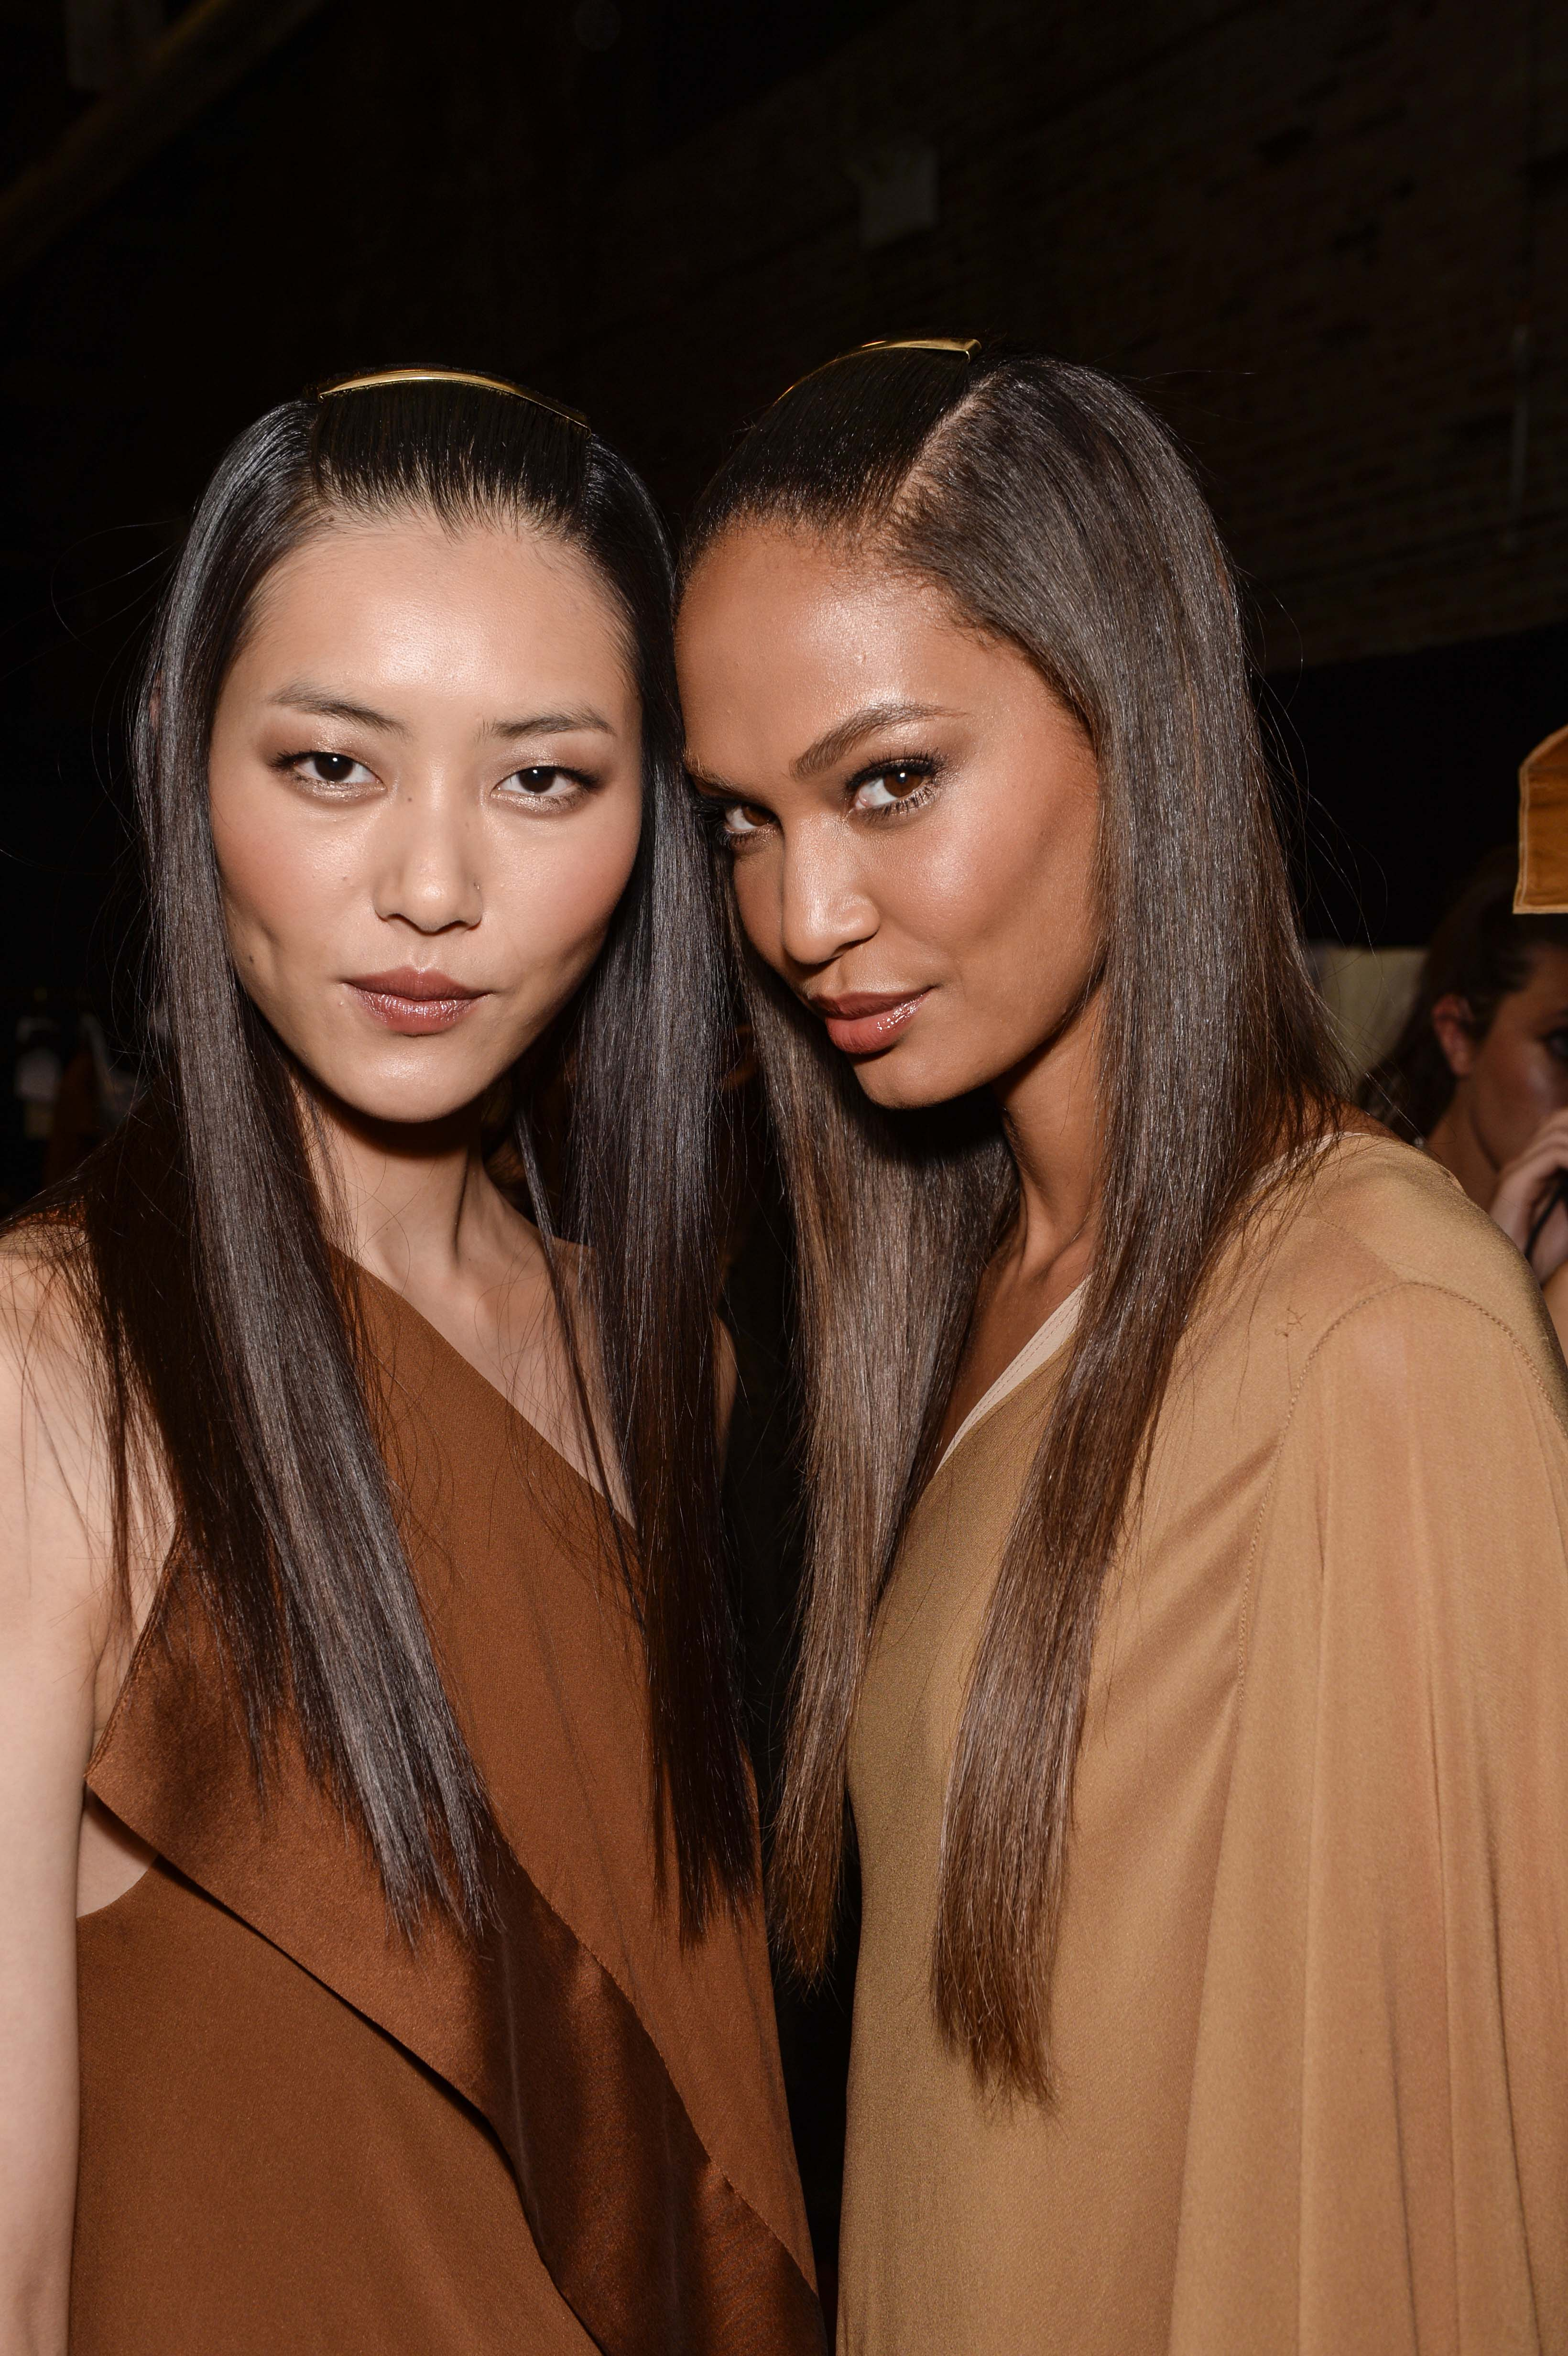 Two women backstage with straight shiny hair